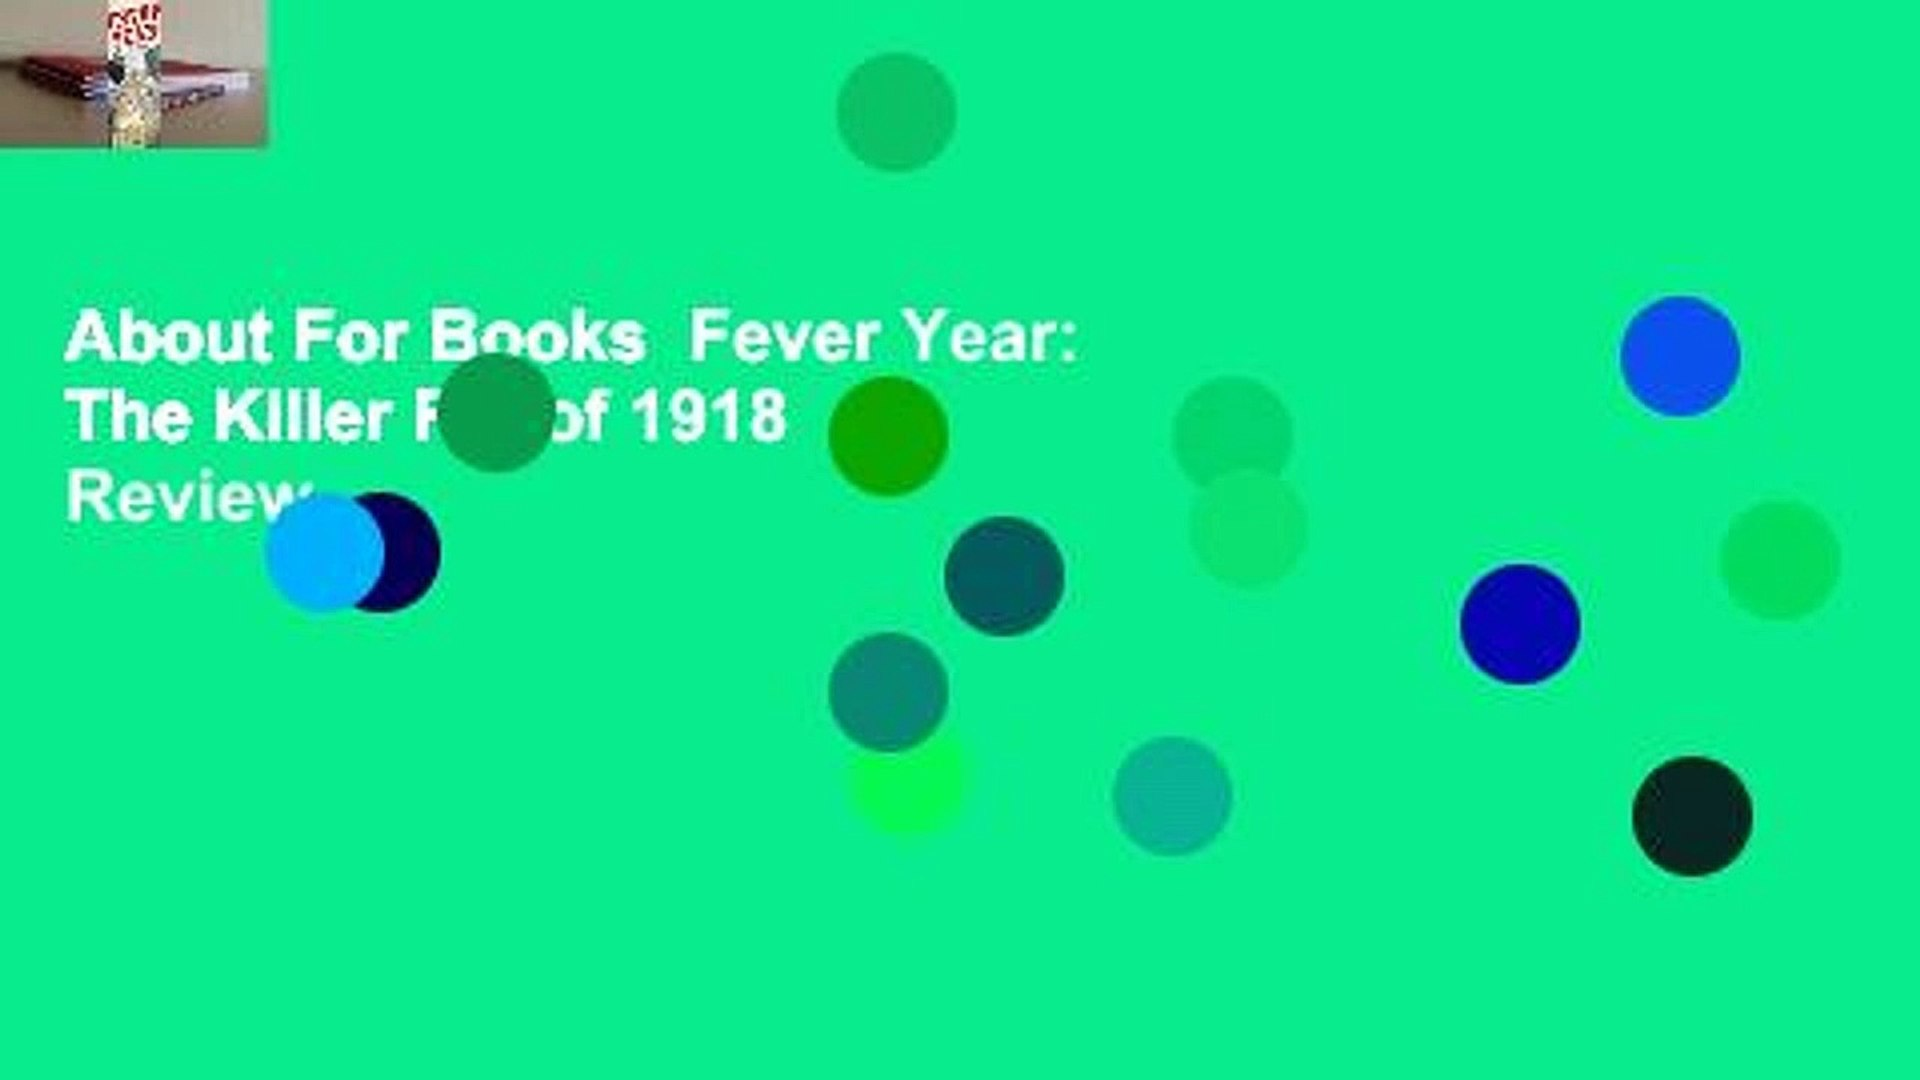 About For Books  Fever Year: The Killer Flu of 1918  Review